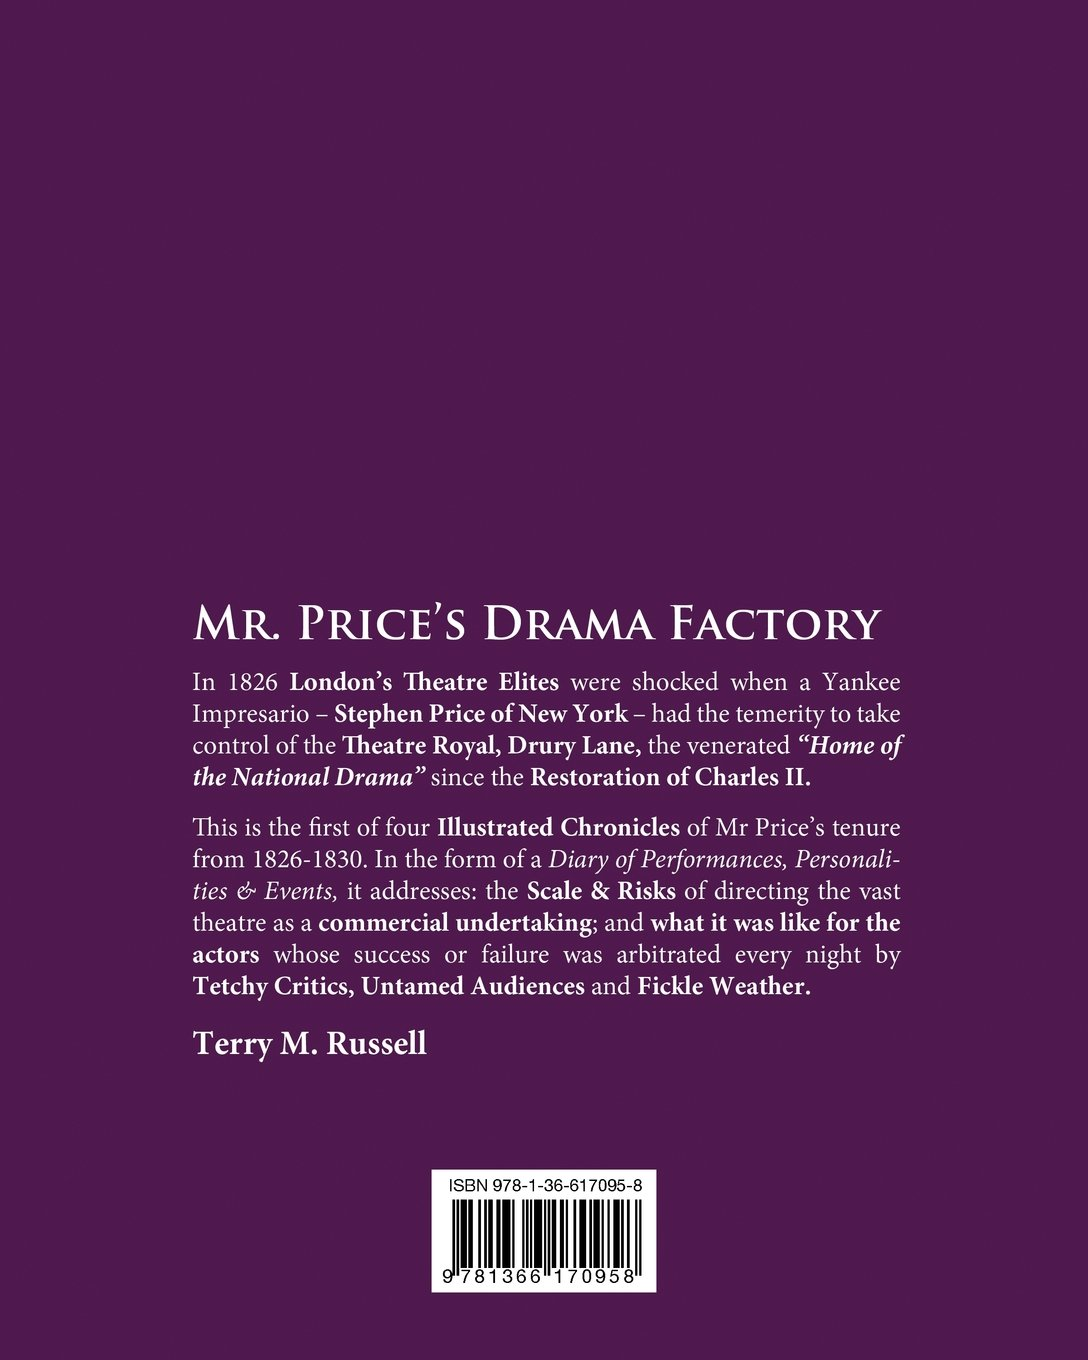 Account application form for mr price - Drury Lane Drama Factory Stephen Price Yankee Impresario Part 1 1826 27 Terry Russell 9781366170958 Amazon Com Books